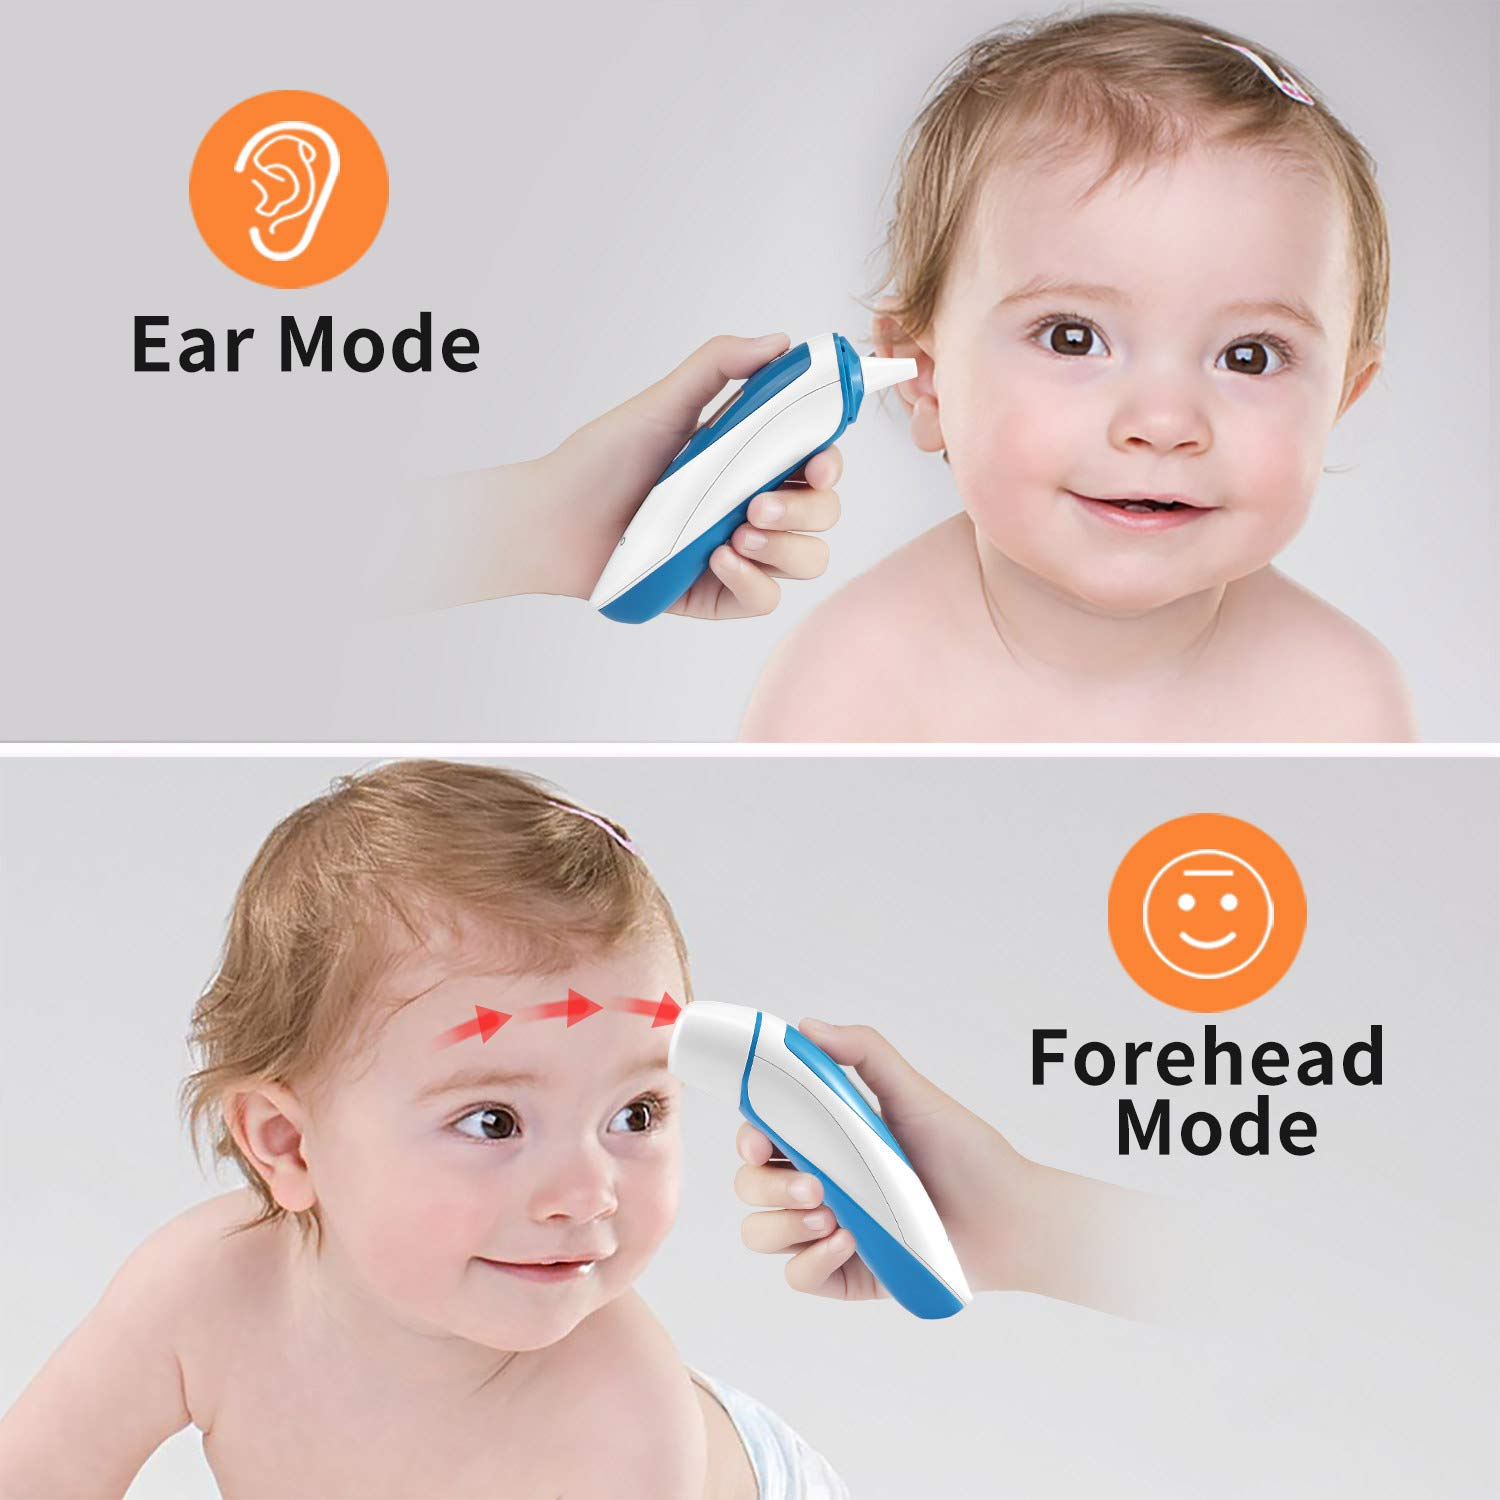 ANKOVO Thermometer For Fever Digital Forehead and Ear Thermometer Medical Infrared for Baby Kids Adults with Fever Indicator by ANKOVO (Image #3)